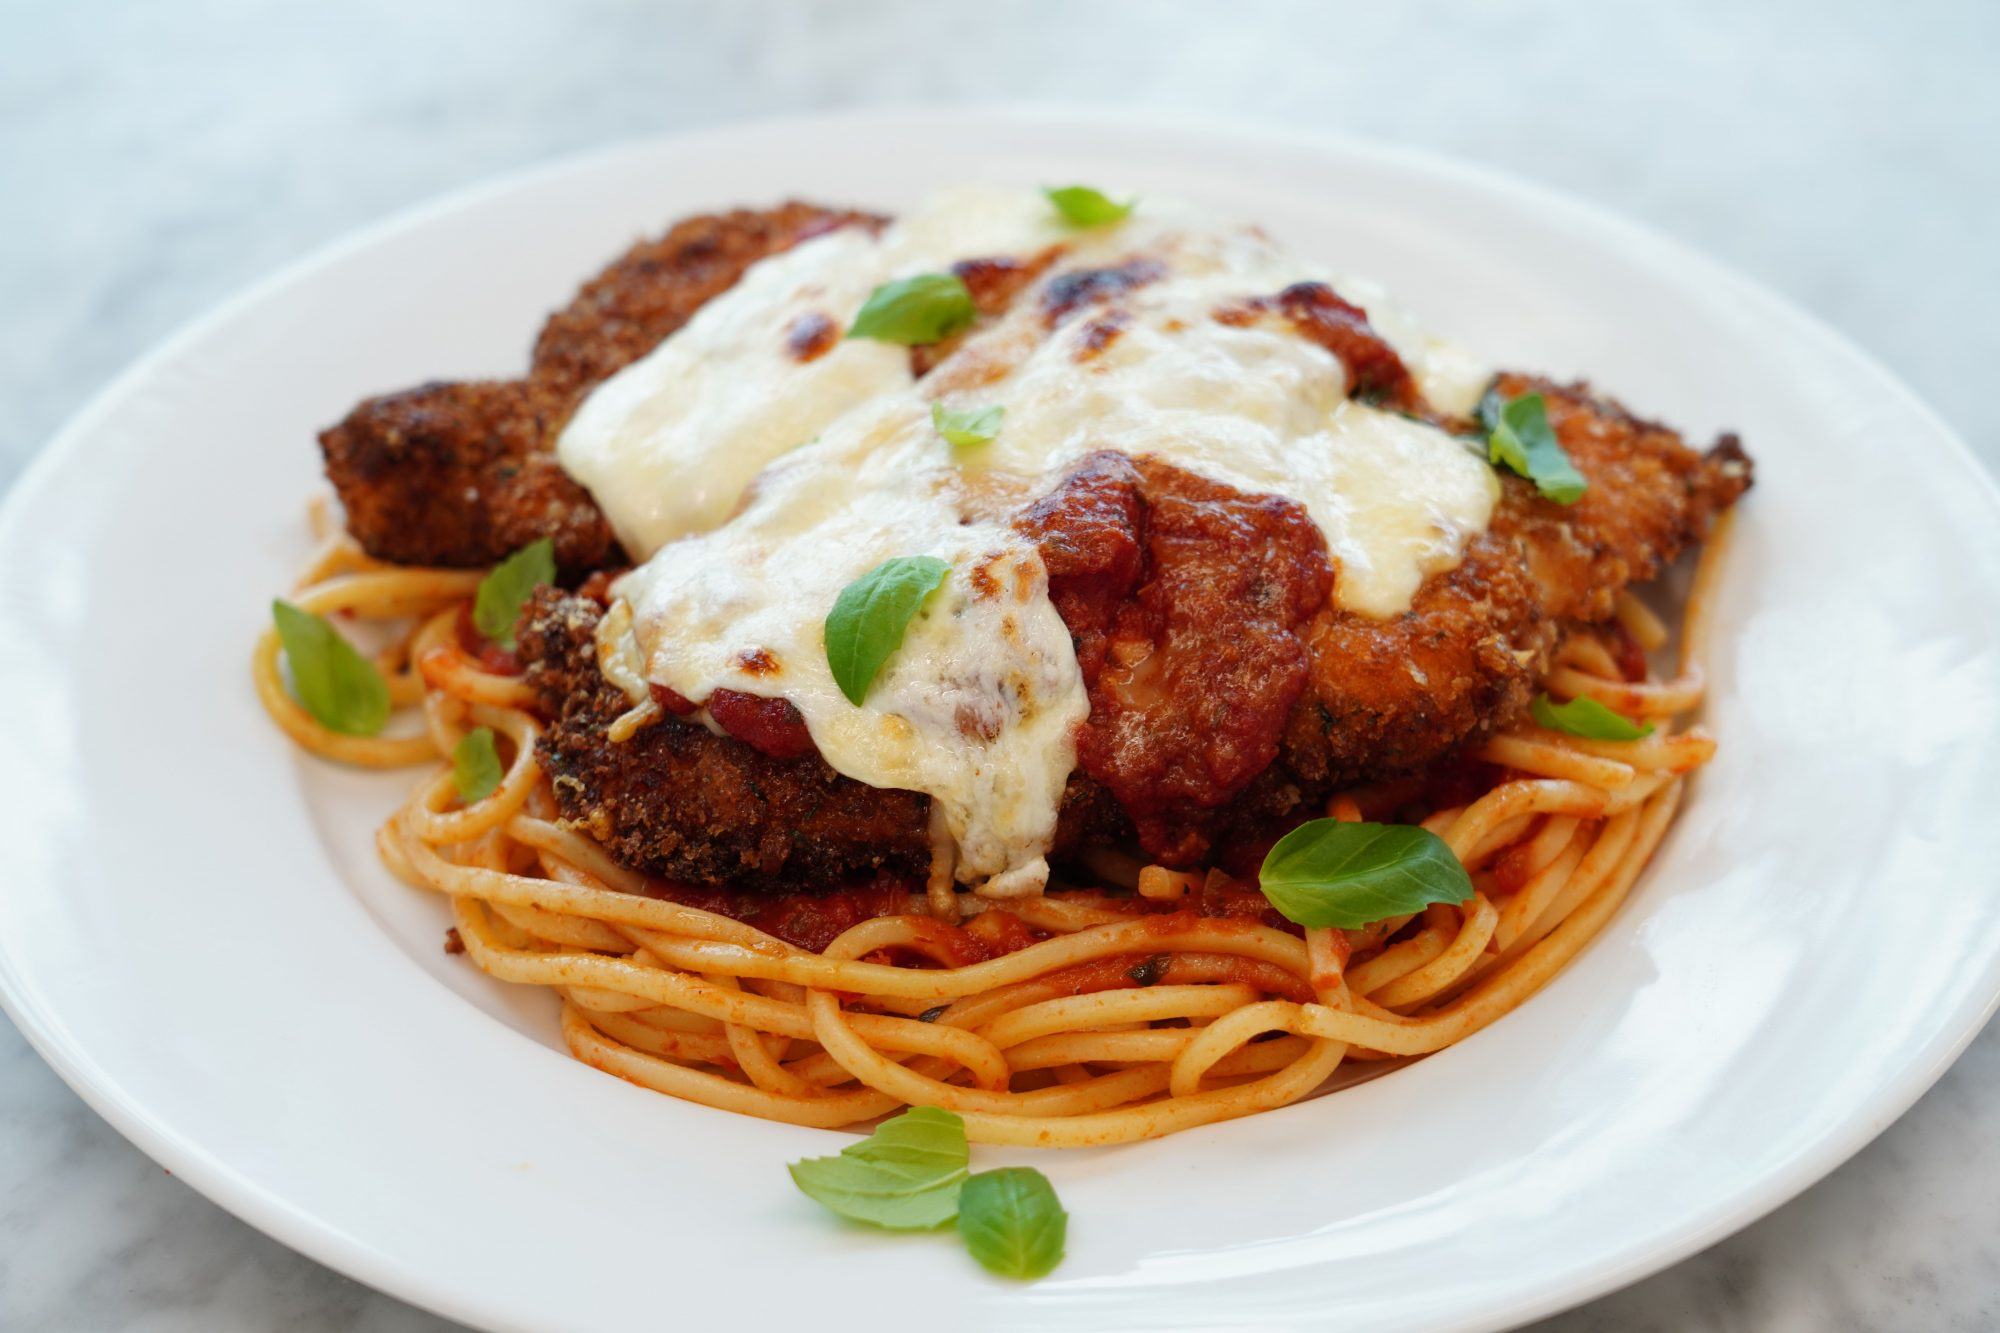 homemade chicken parmesan recipe served on spaghetti and garnished with fresh basil leaves